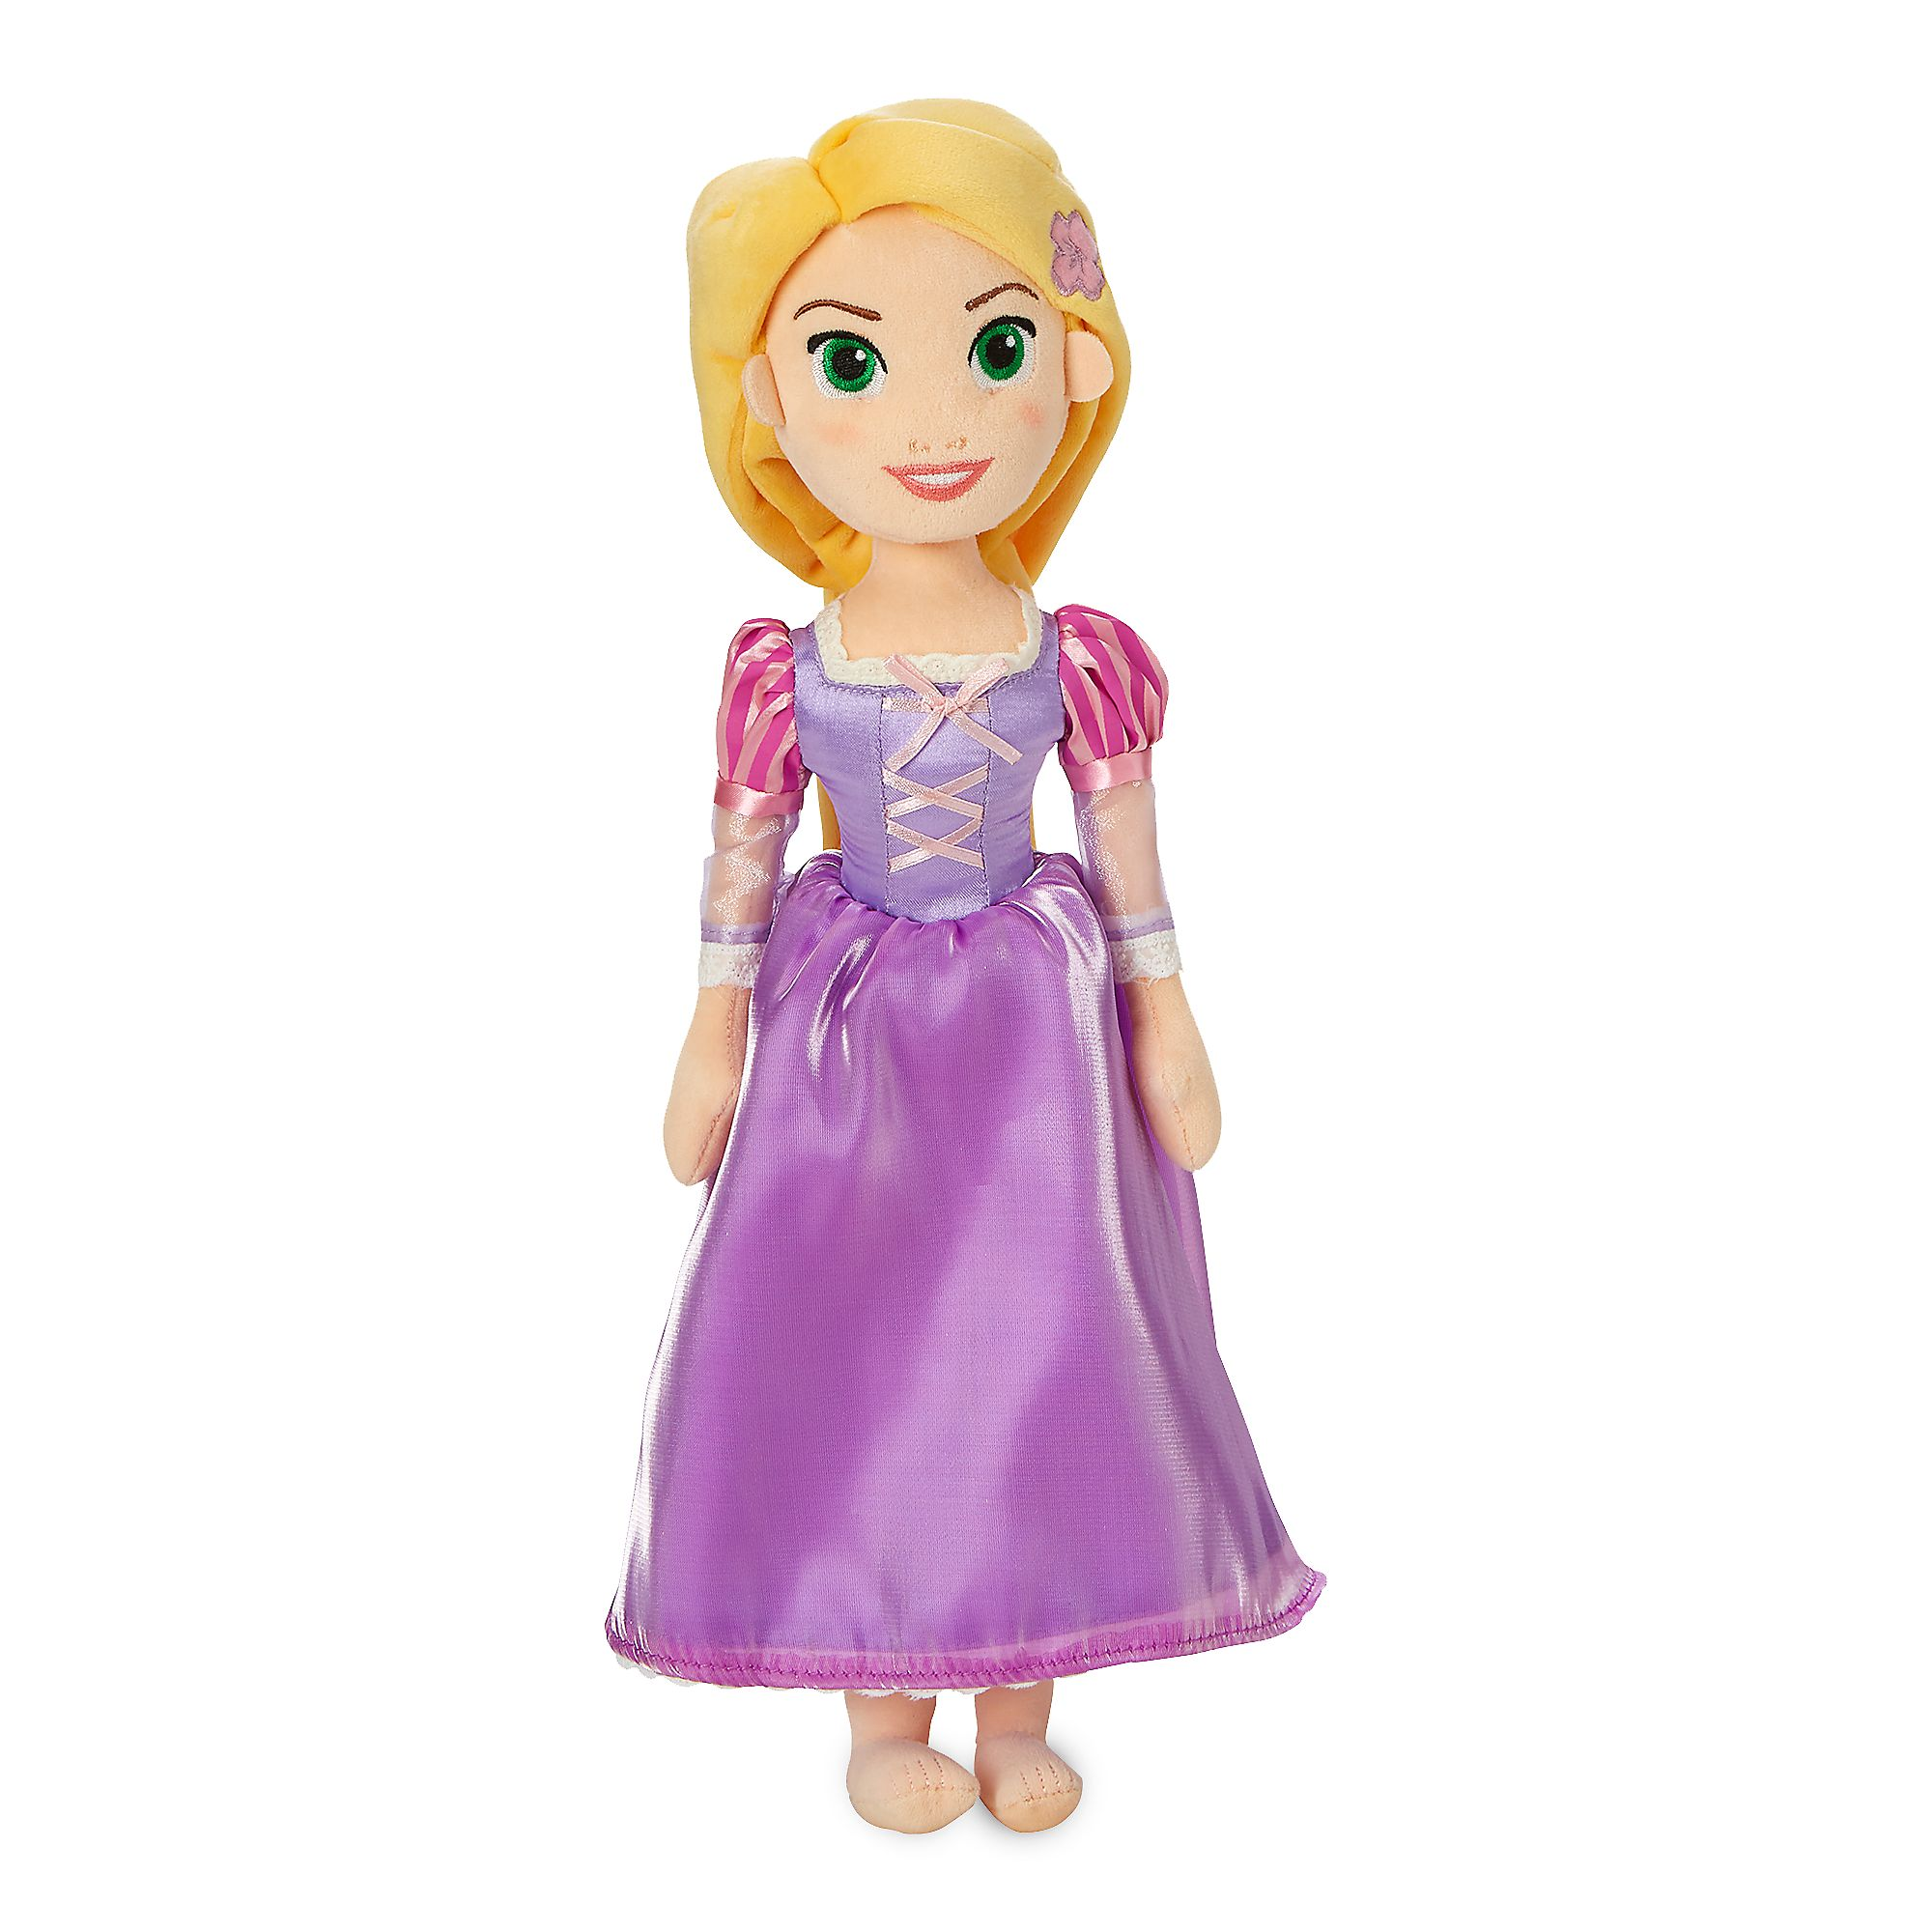 Disney Princess Tangled Rapunzel Large Plush Doll Genuine Disney